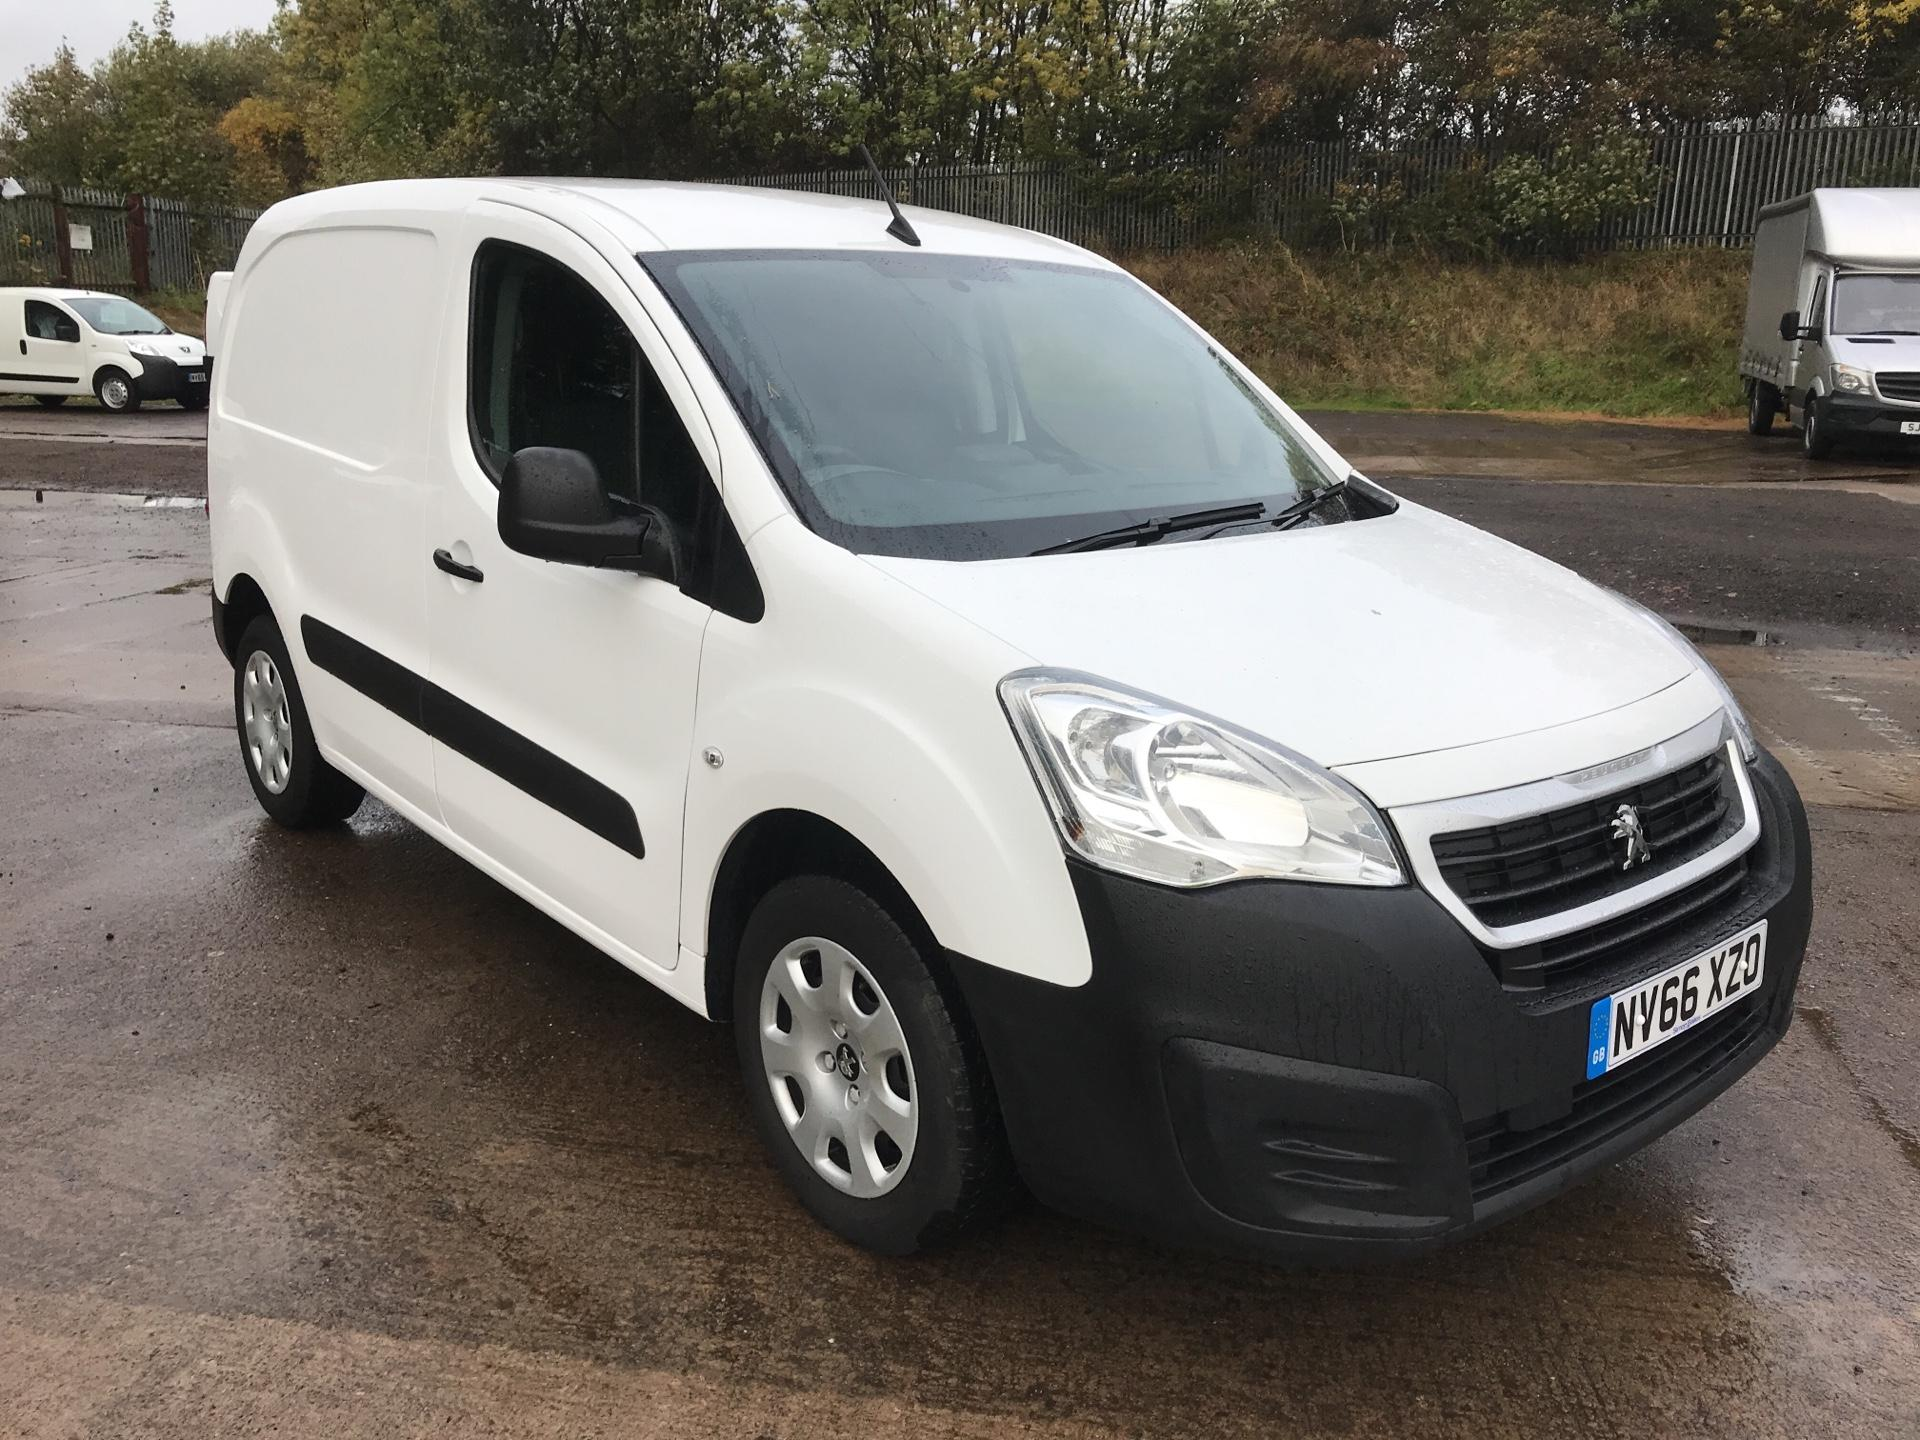 2017 Peugeot Partner L1 850 S 1.6 BLUEHDI 100PS PROFESSIONAL EURO 6 (NV66XZO)